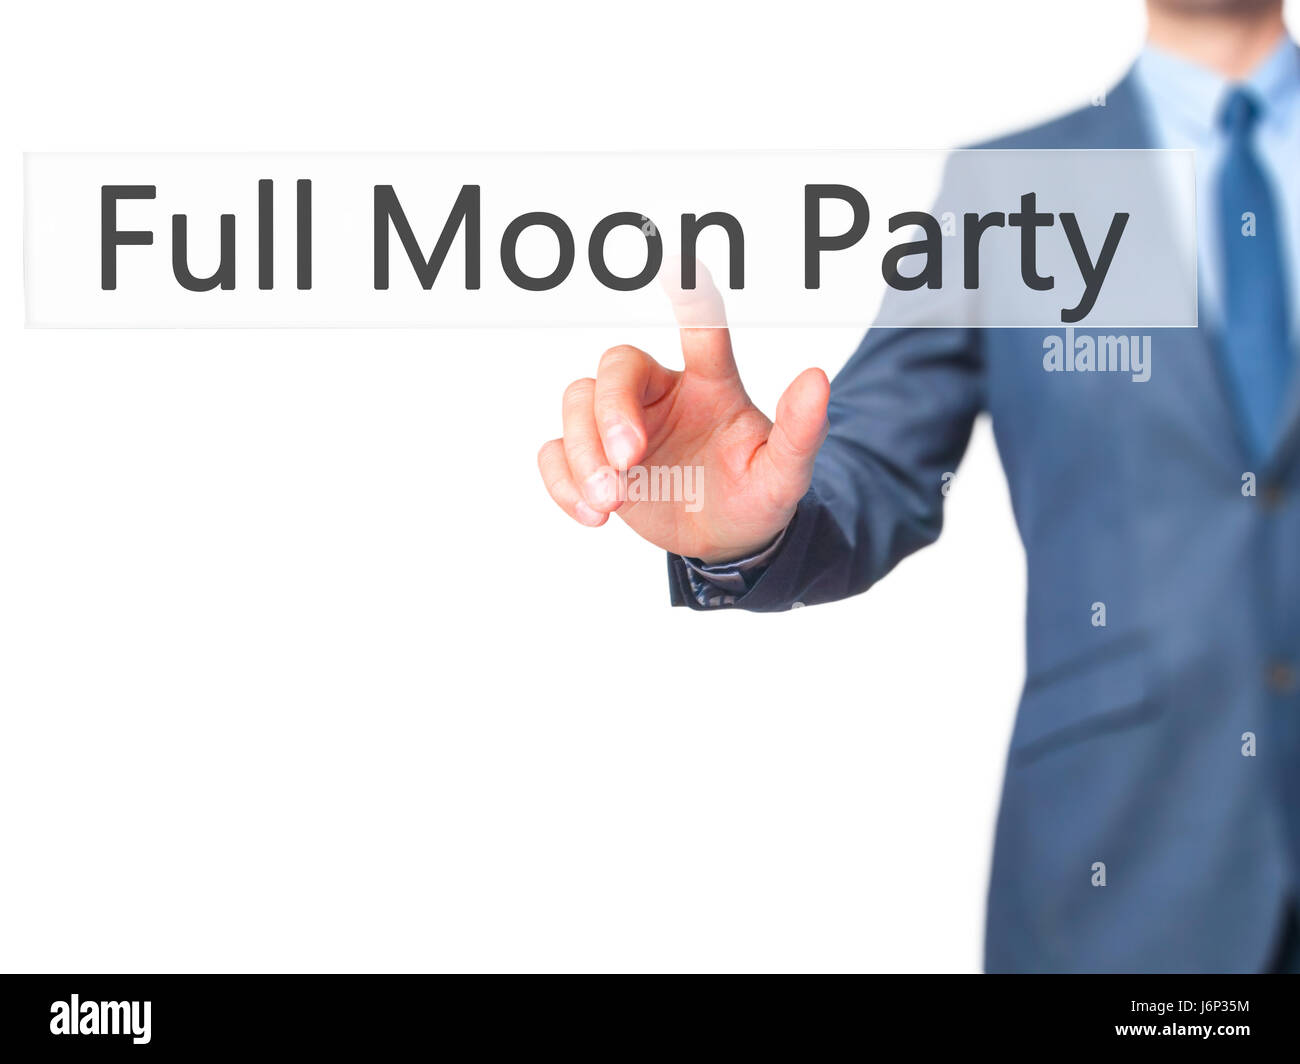 Full Moon Party - Businessman hand pressing button on touch screen interface. Business, technology, internet concept. - Stock Image